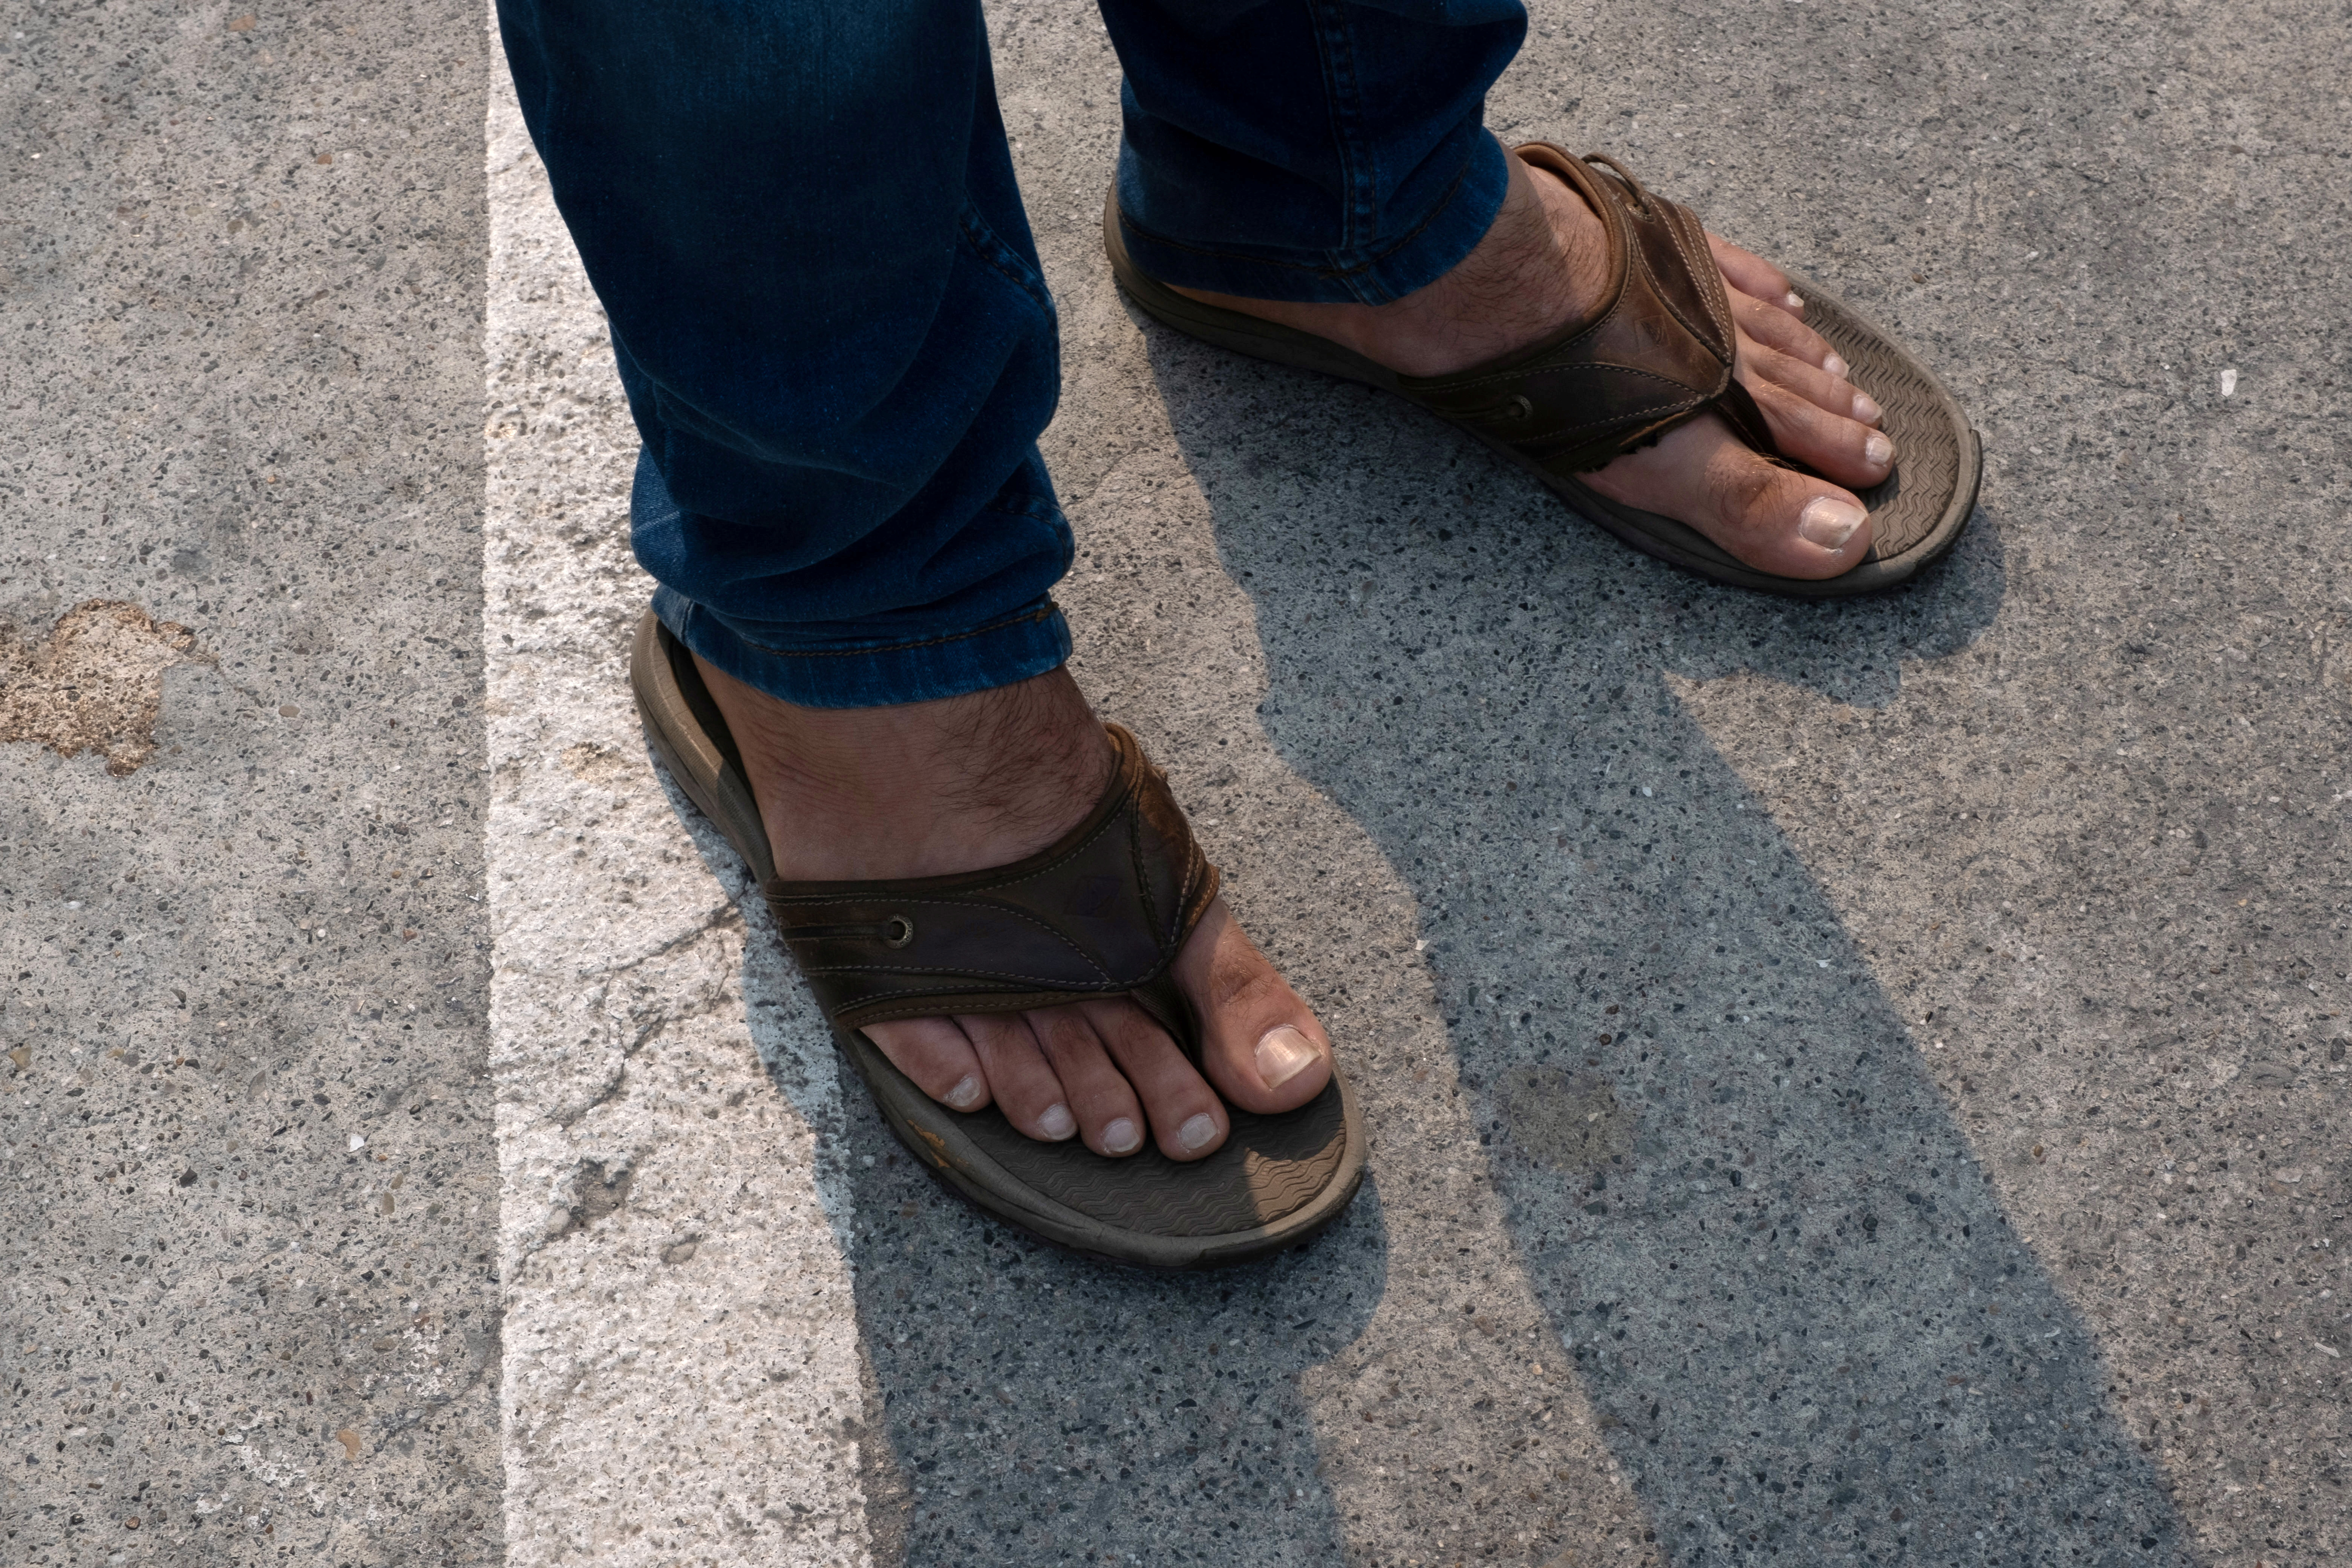 A photo of Afghan SIV recipient Abdul Noori's feet in Burlingame, California, U.S., August 19, 2021. Picture taken August 19, 2021.  REUTERS/Nick Otto